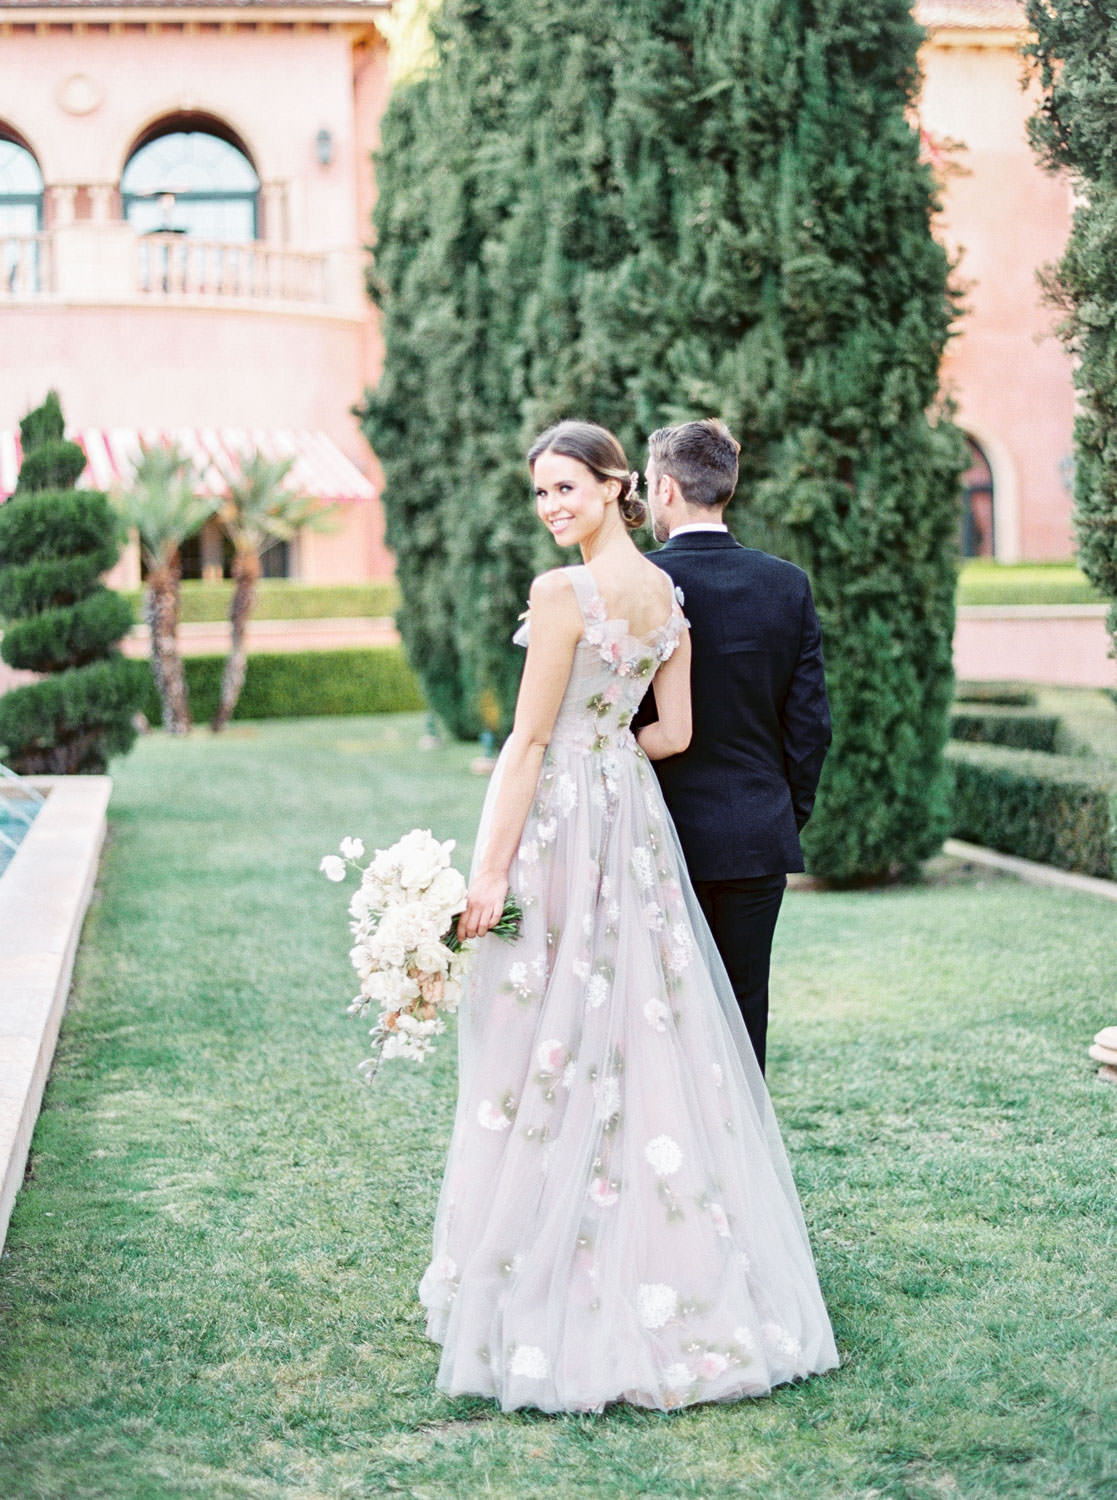 Bride walking with groom on the reflection lawn in a Marchesa blush neutral floral gown, Fairmont Grand Del Mar Wedding by Cavin Elizabeth Photography